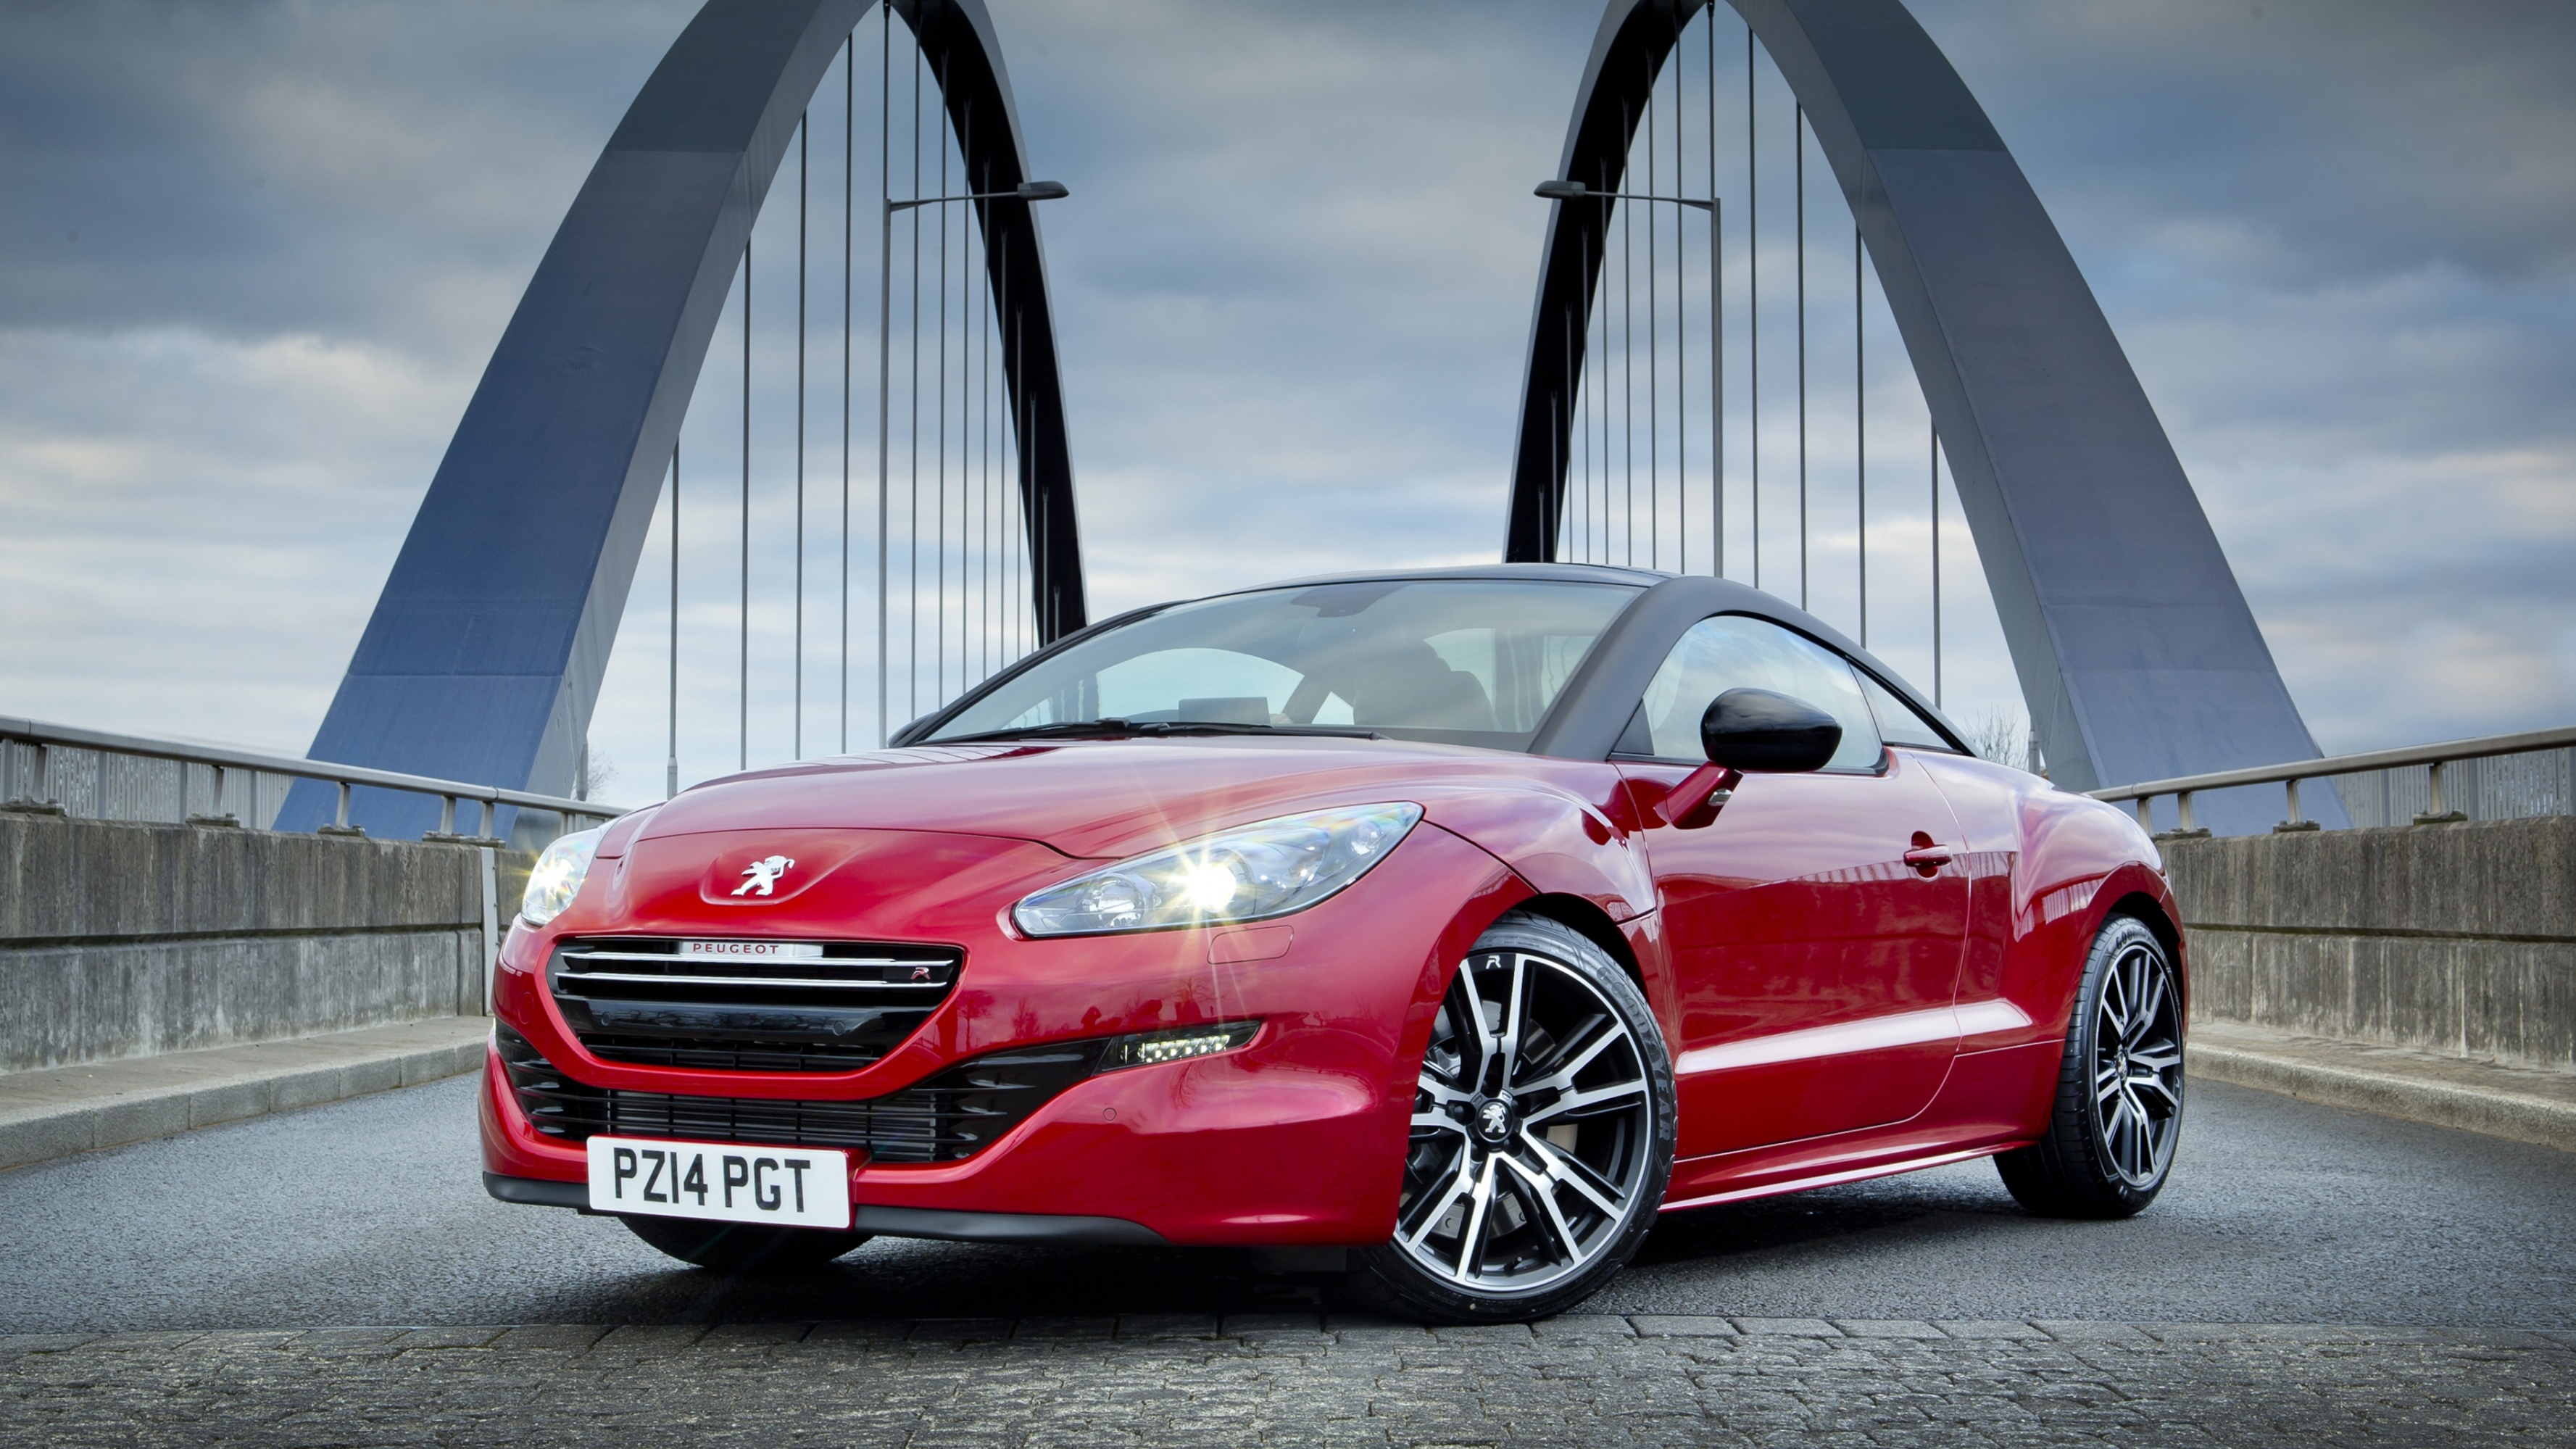 peugeot rcz r sports coupe uk version 2014 wallpapers 3554x1999 1743185. Black Bedroom Furniture Sets. Home Design Ideas